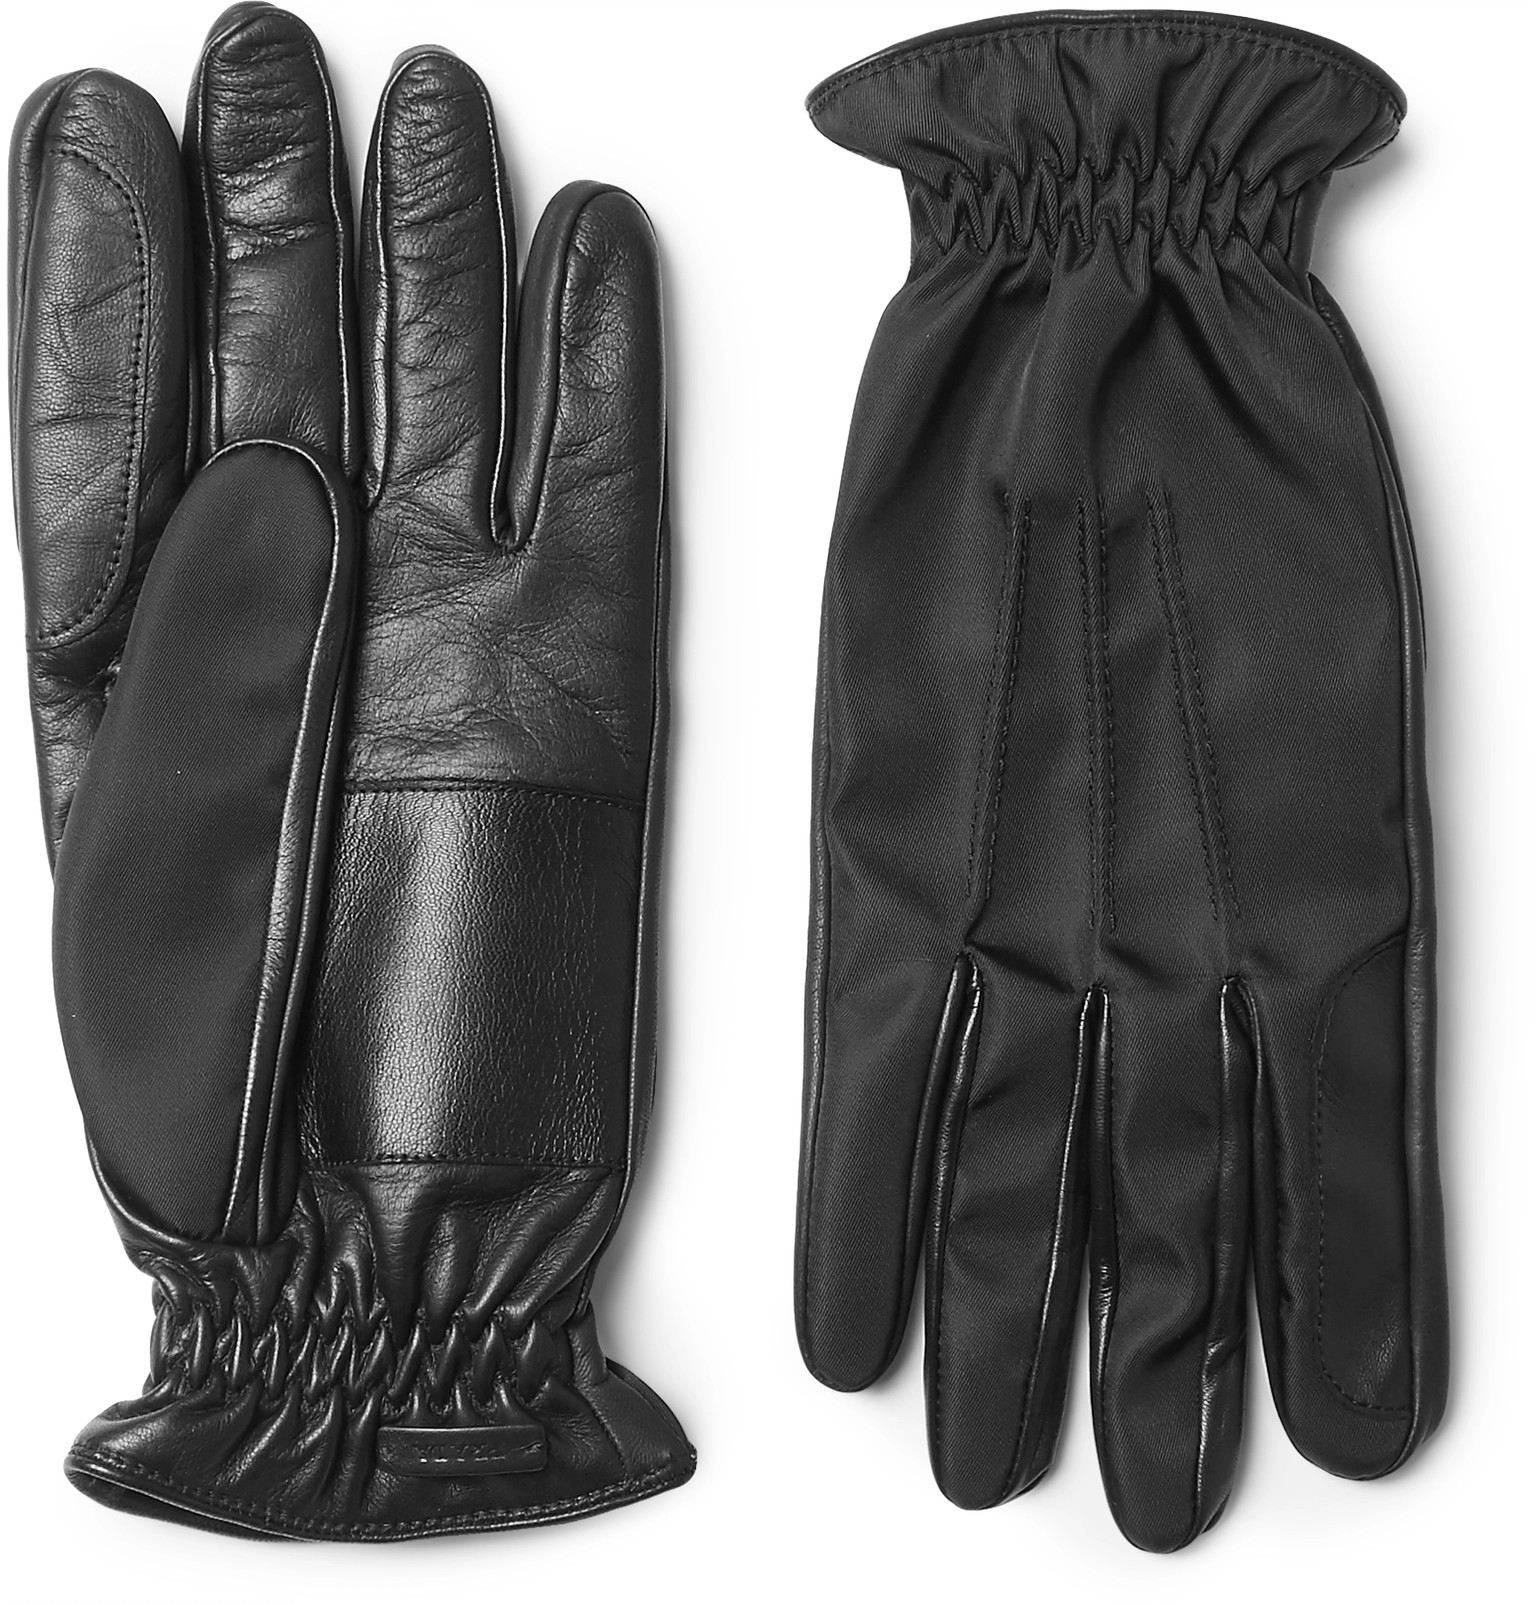 Prada mens leather gloves - Prada Cashmere Lined Leather And Twill Gloves